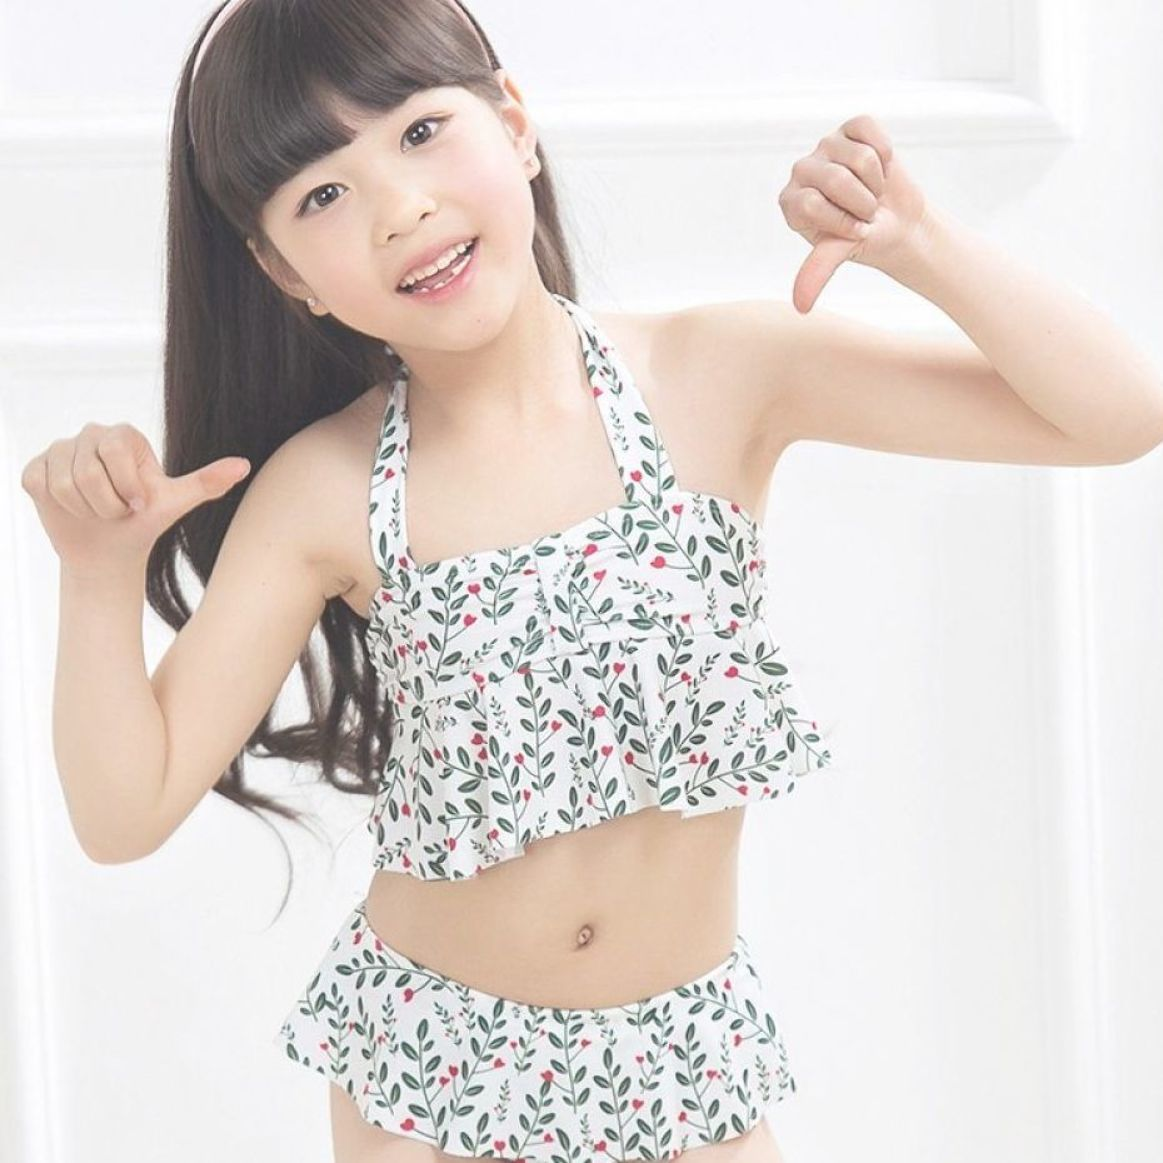 New Season Extra Cute Girls Two Piece Swimsuit Price  2532  FREE Shipping